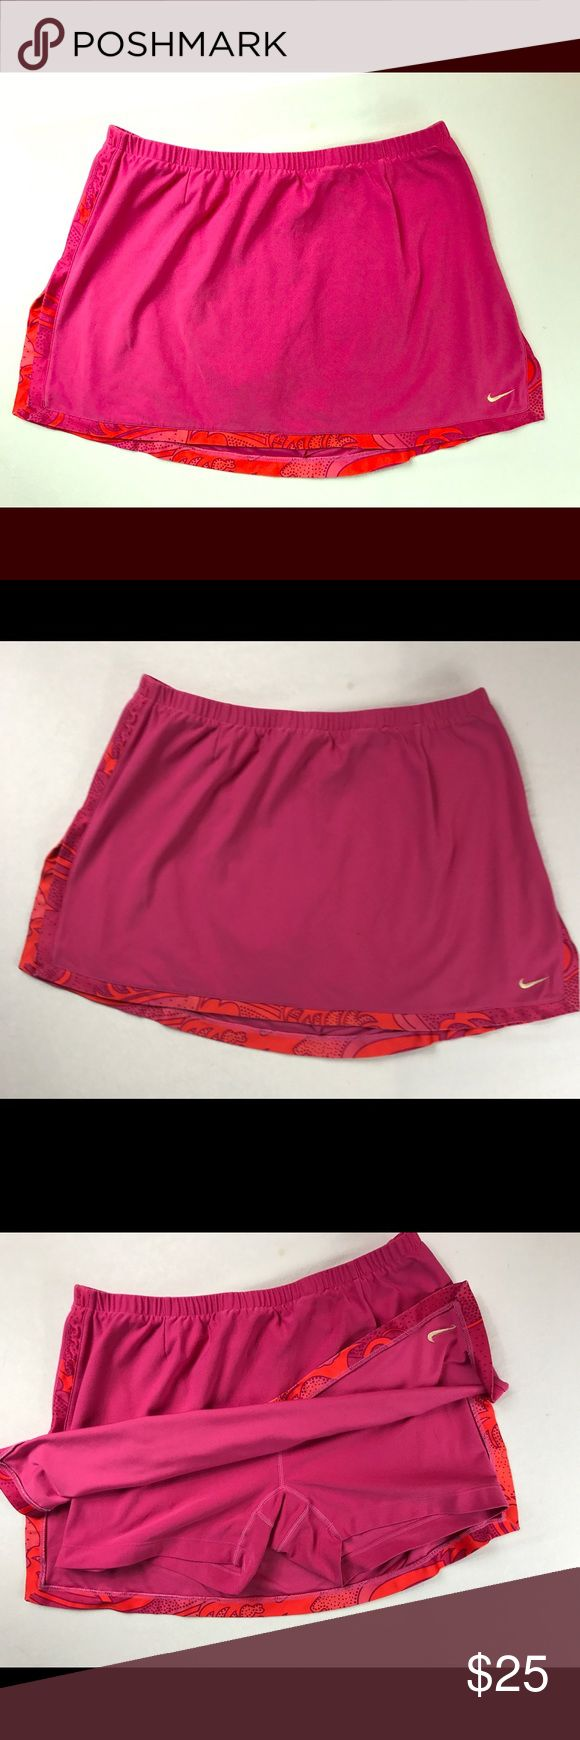 Nike DRI-FIT Woman's Athletic Skirt Nike DRI-FIT Athletic Skirt with built in Compression Shorts Size L Nike Skirts